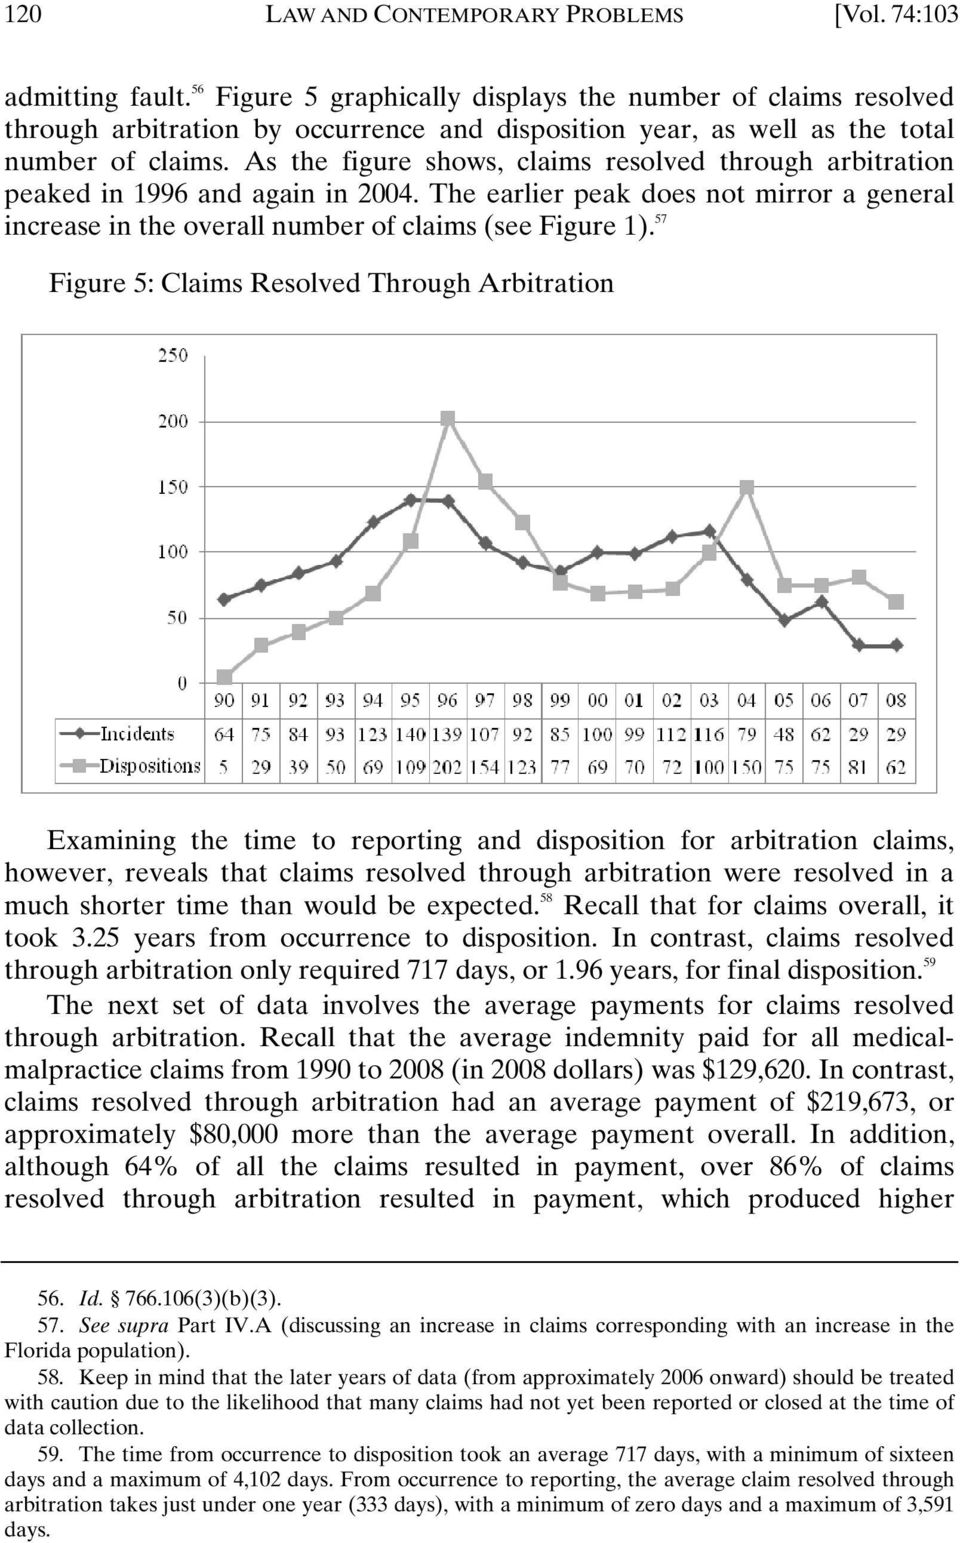 As the figure shows, claims resolved through arbitration peaked in 1996 and again in 2004. The earlier peak does not mirror a general increase in the overall number of claims (see Figure 1).